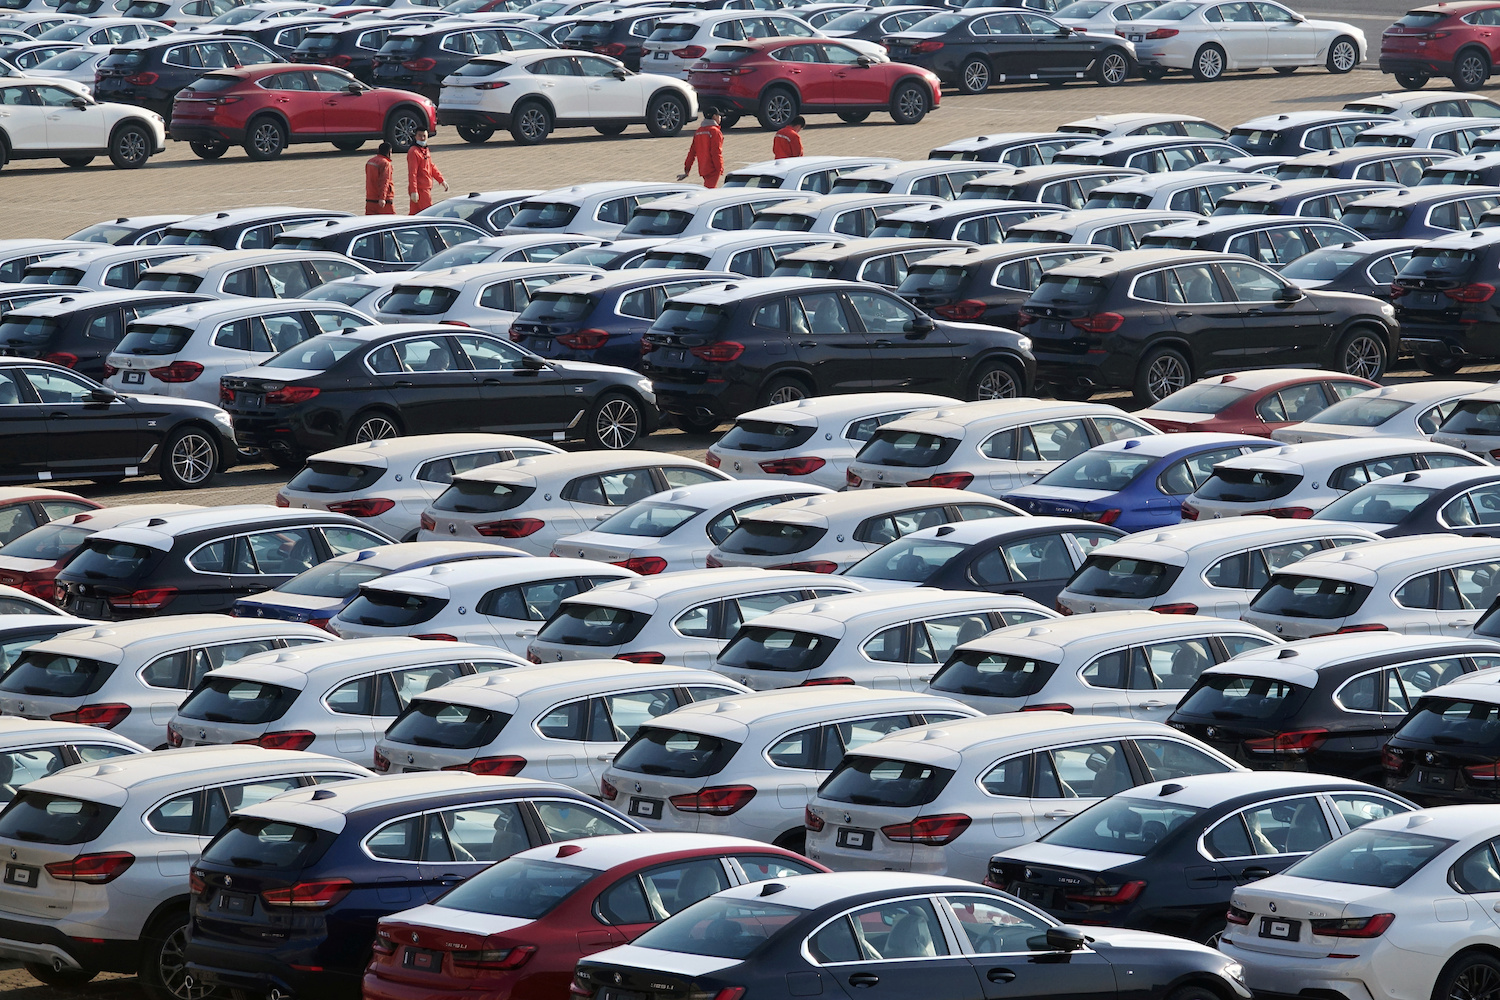 China's EV sales rise for 2nd month amid market recovery